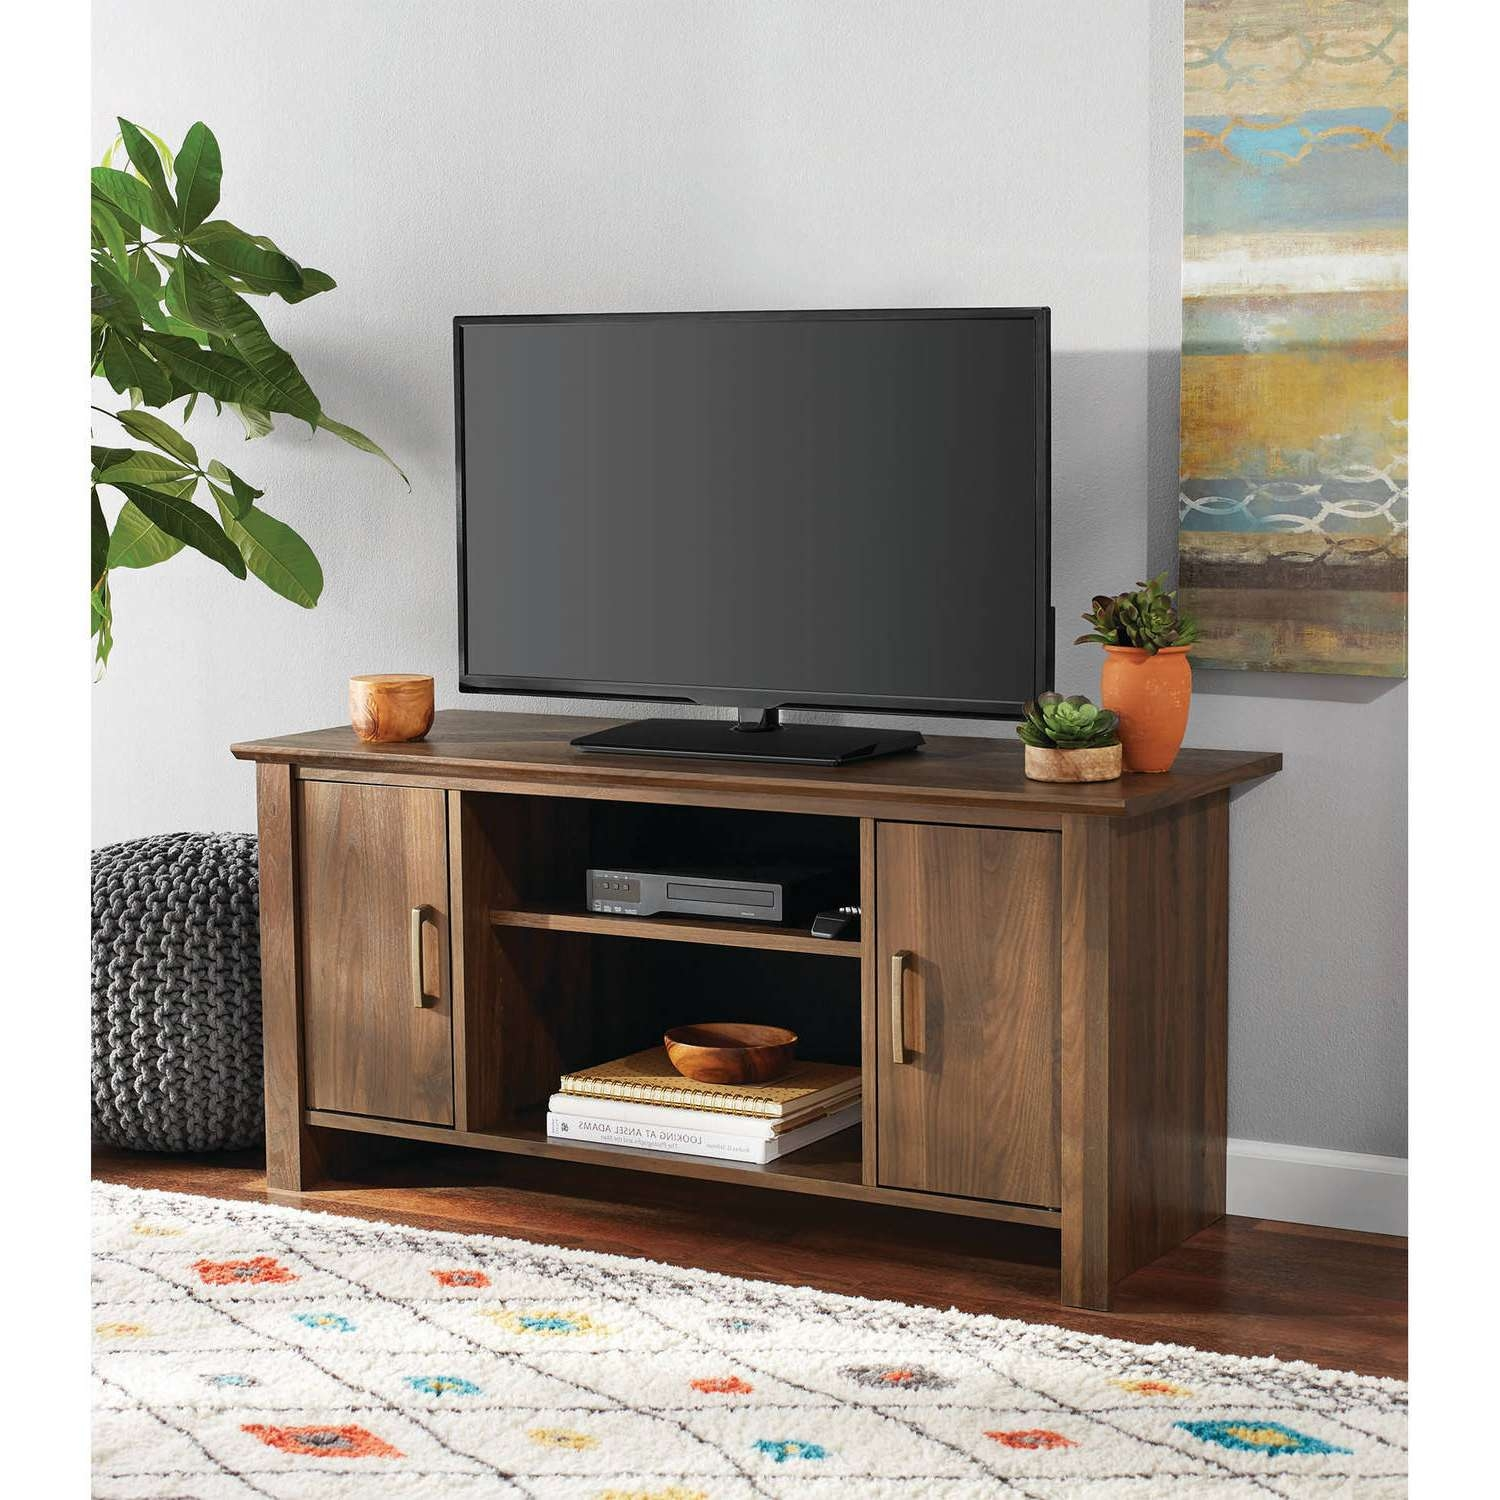 Tv : Off Wall Tv Stands Gratifying Off The Wall Tv Stands Cheap With Regard To Off Wall Tv Stands (View 15 of 15)